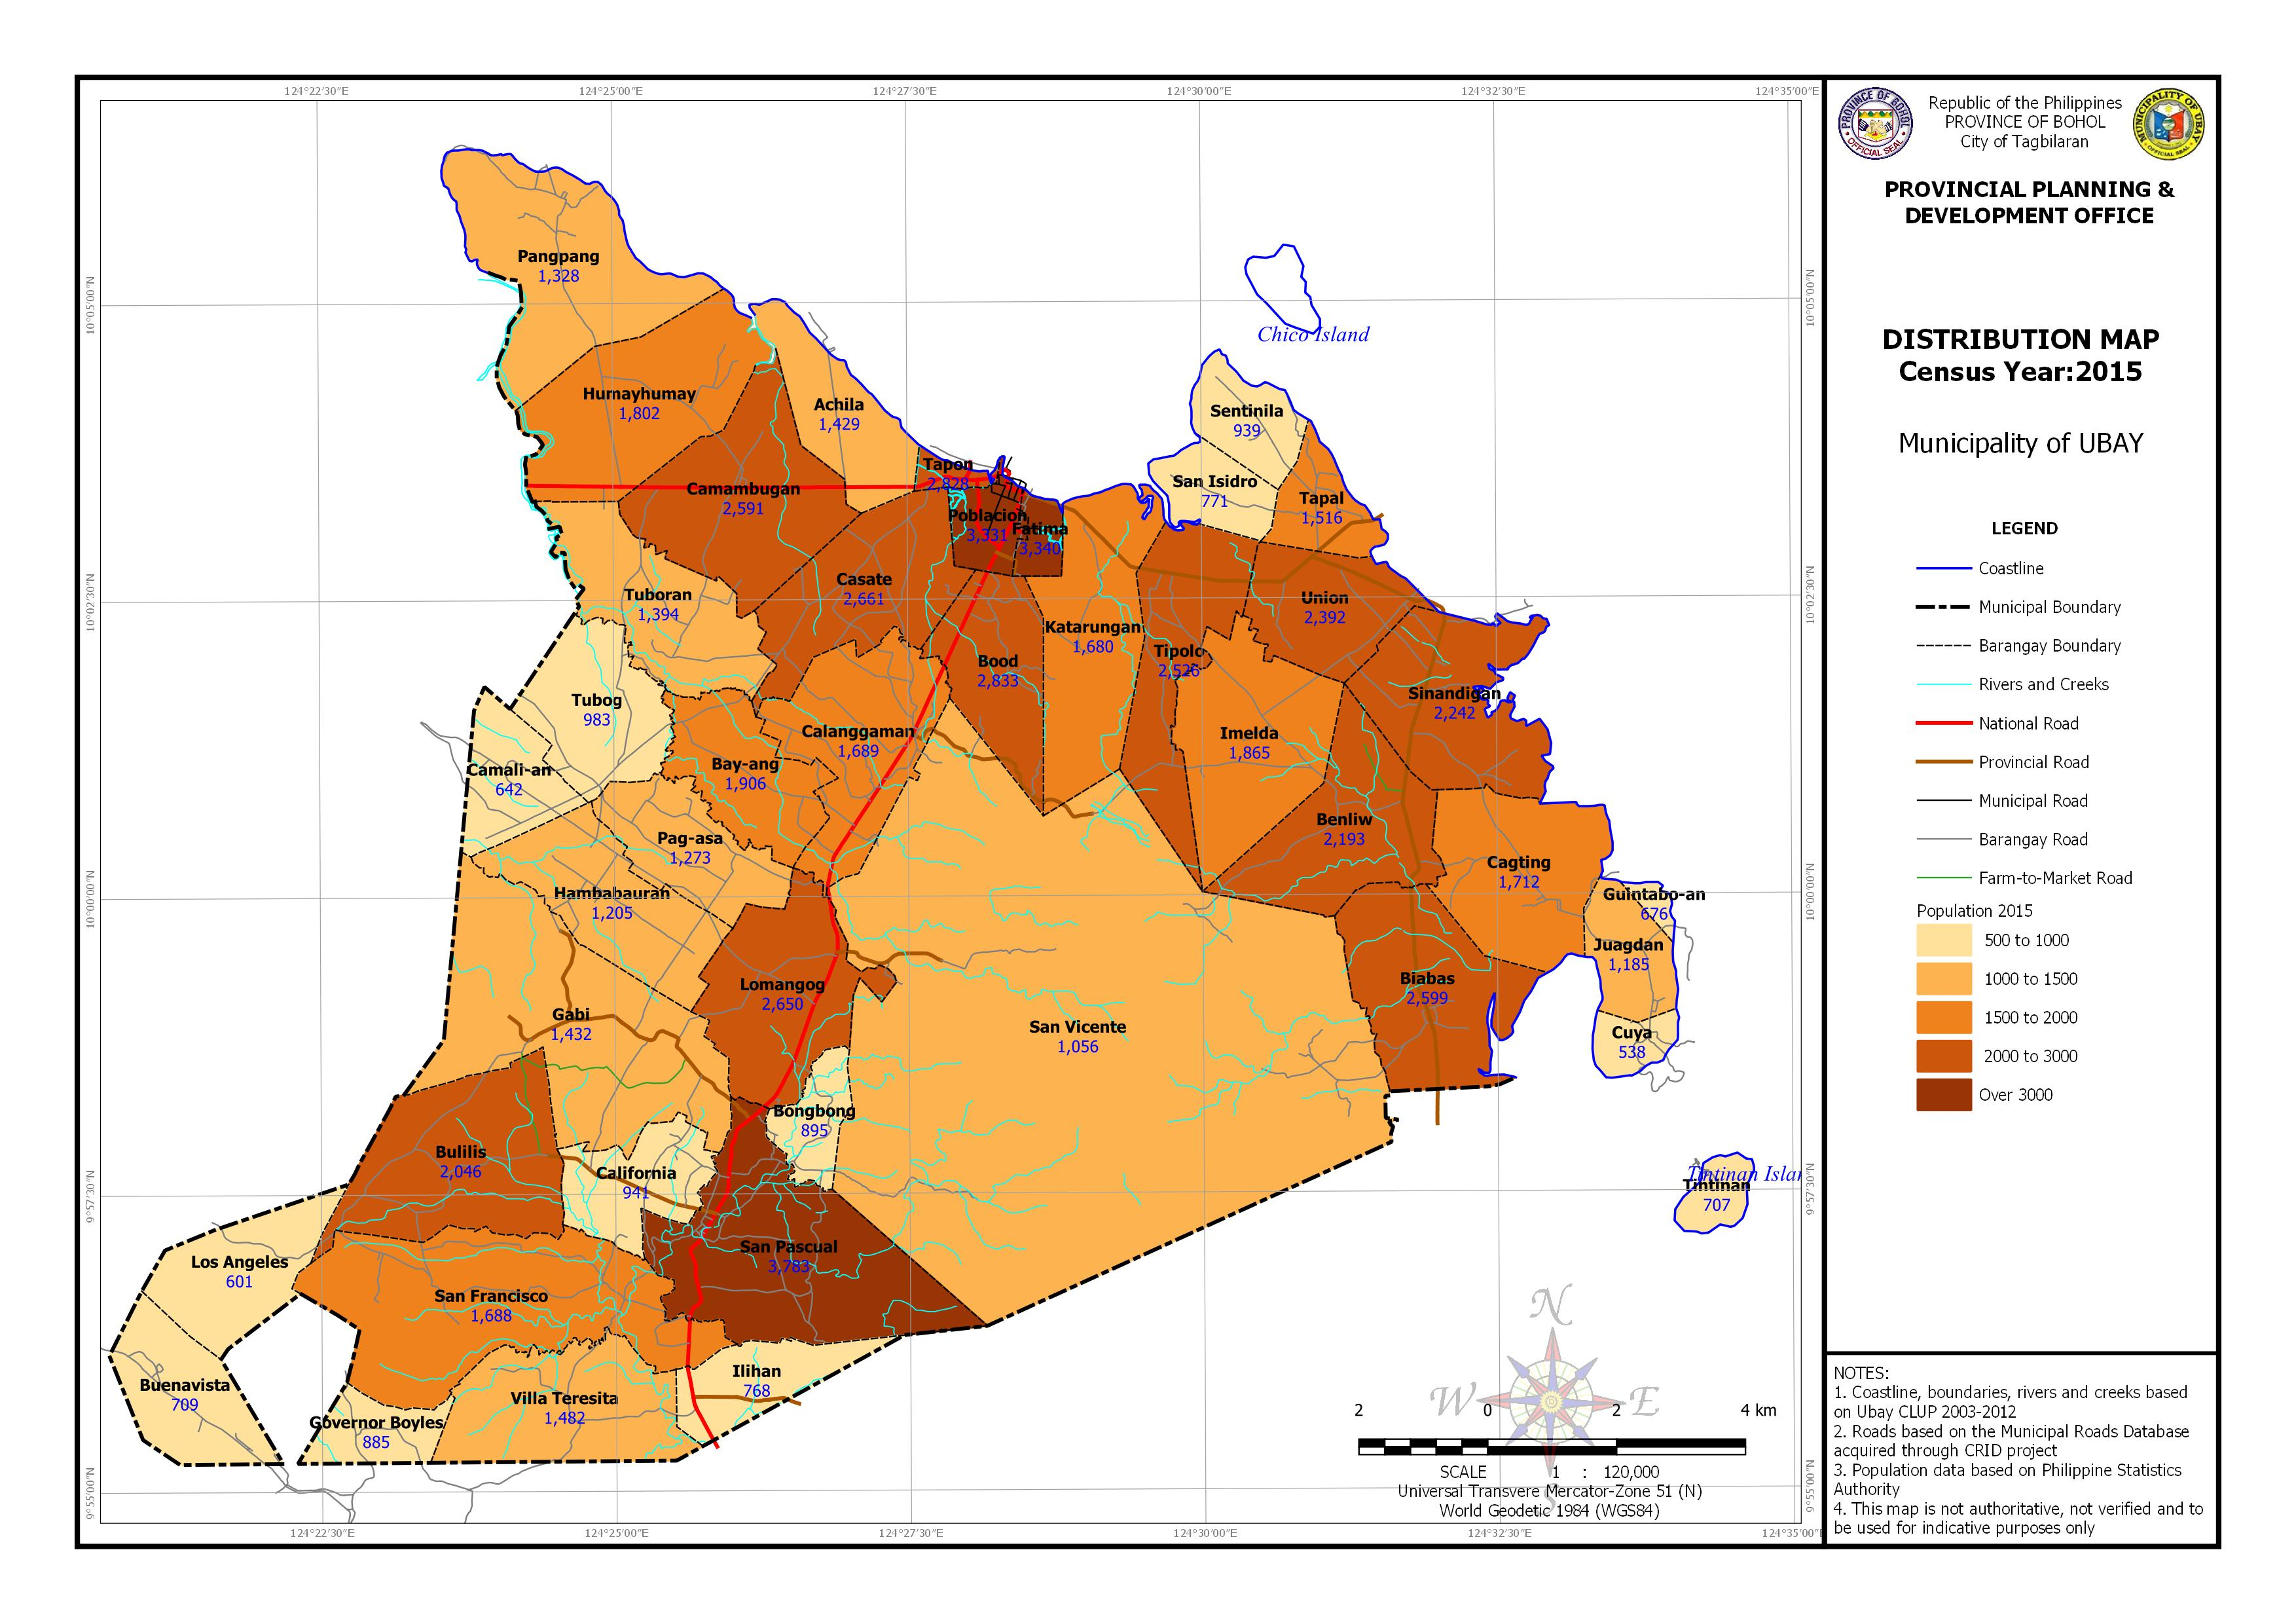 Population Distribution Census Year: 2015 Map